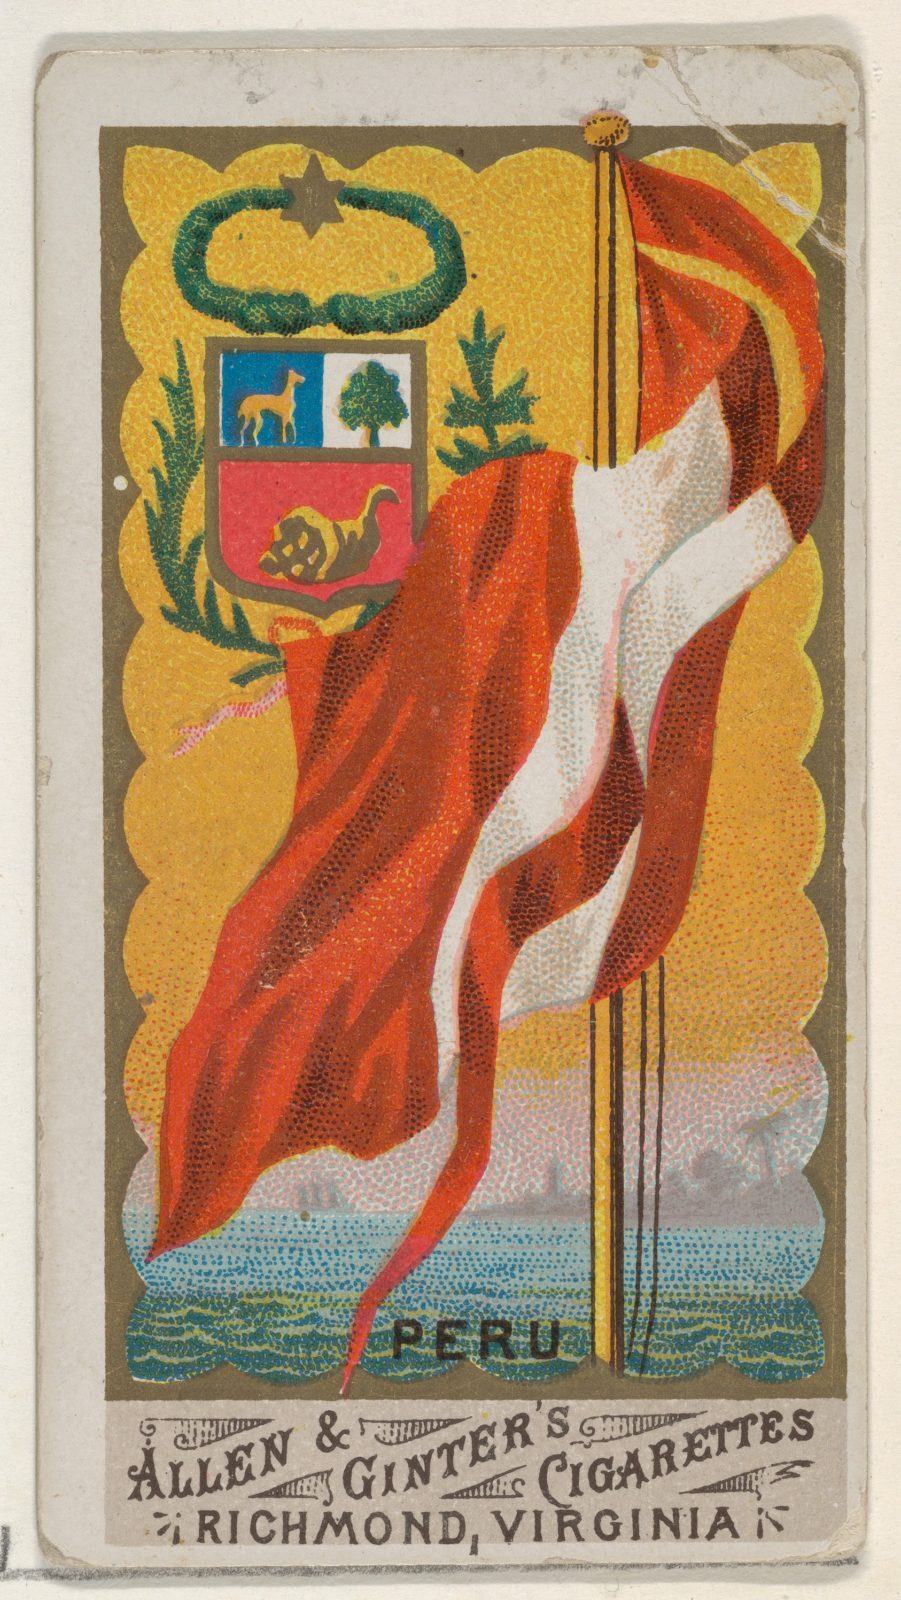 Peru, from Flags of All Nations, Series 1 (N9) for Allen & Ginter Cigarettes Brands